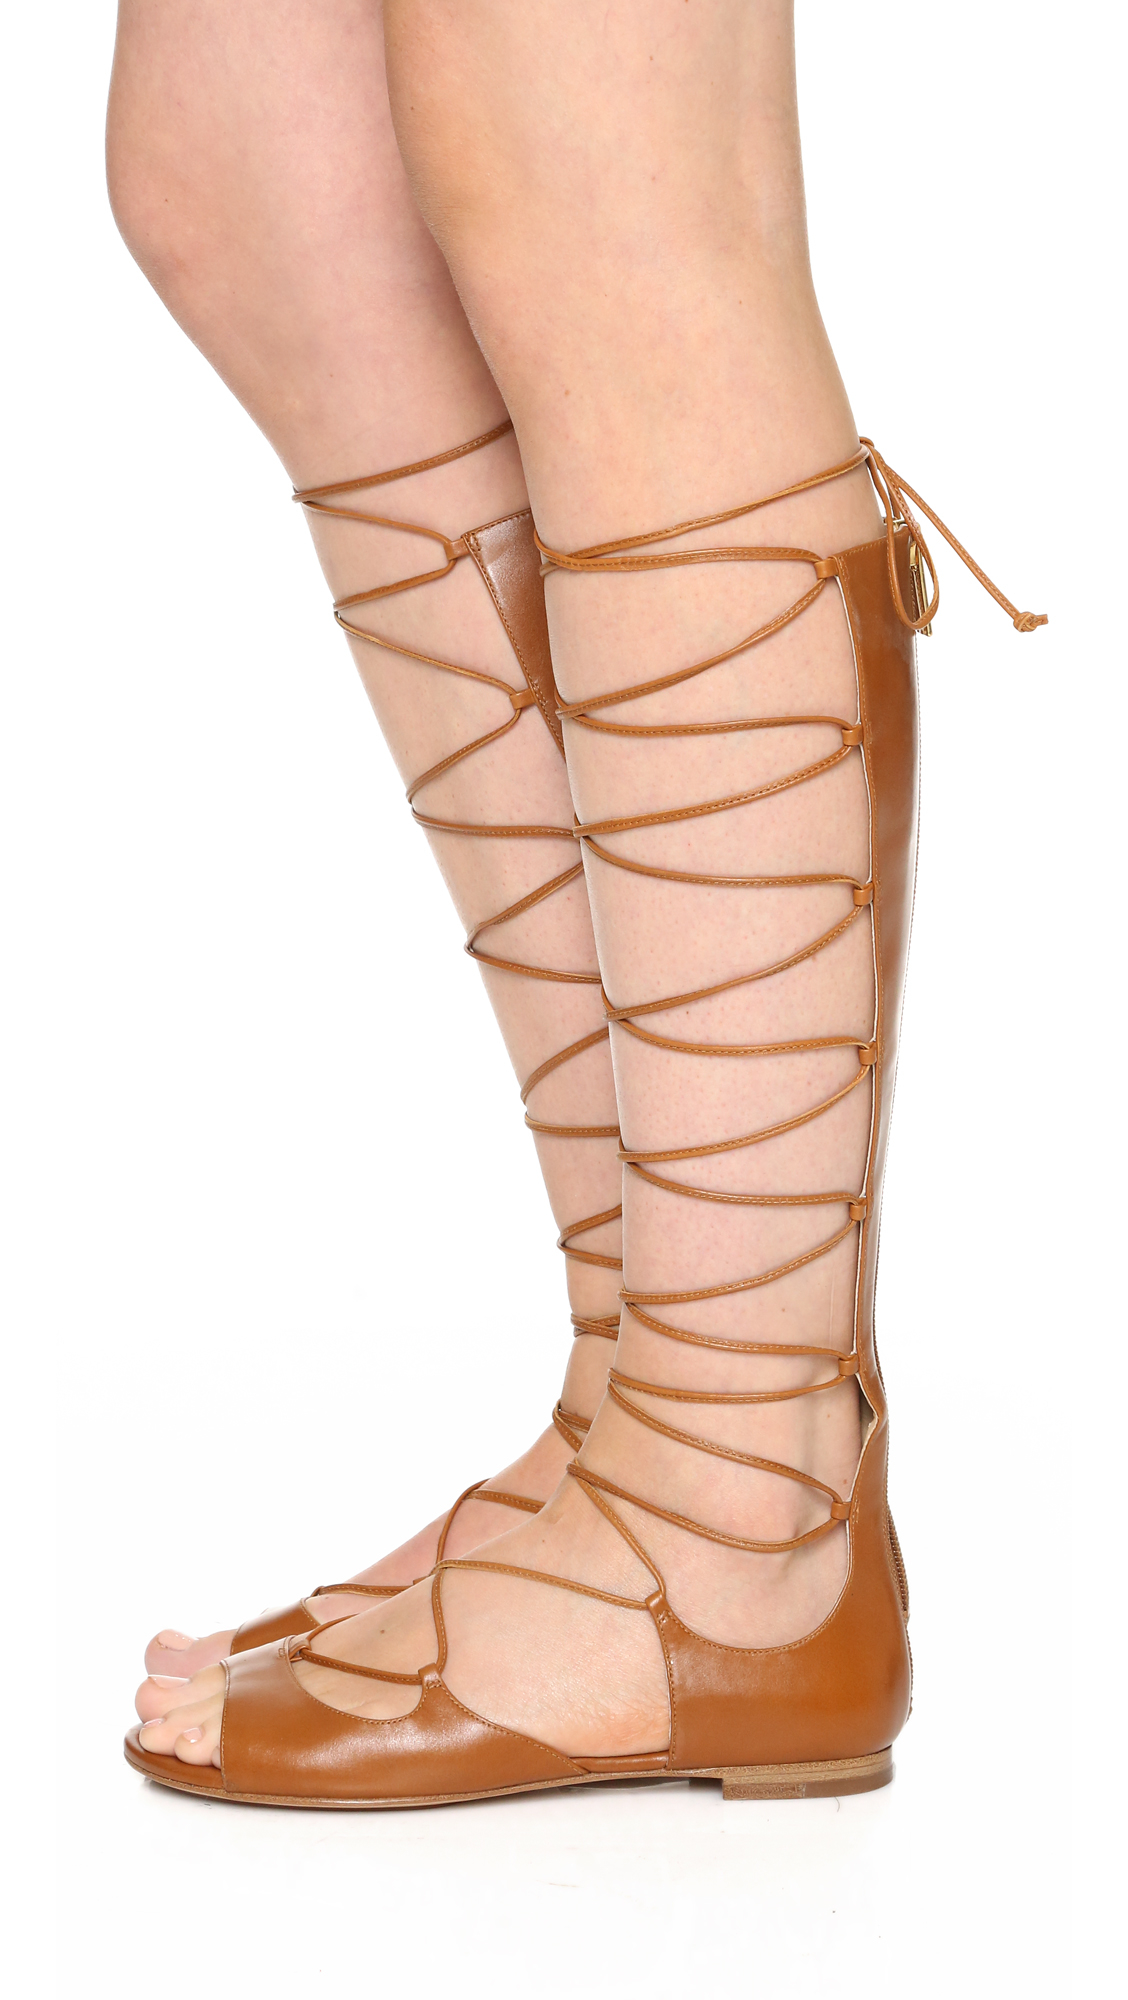 53dcf7c1fe19 Gallery. Previously sold at  Shopbop · Women s Lace Up Flats Women s Gladiator  Sandals ...